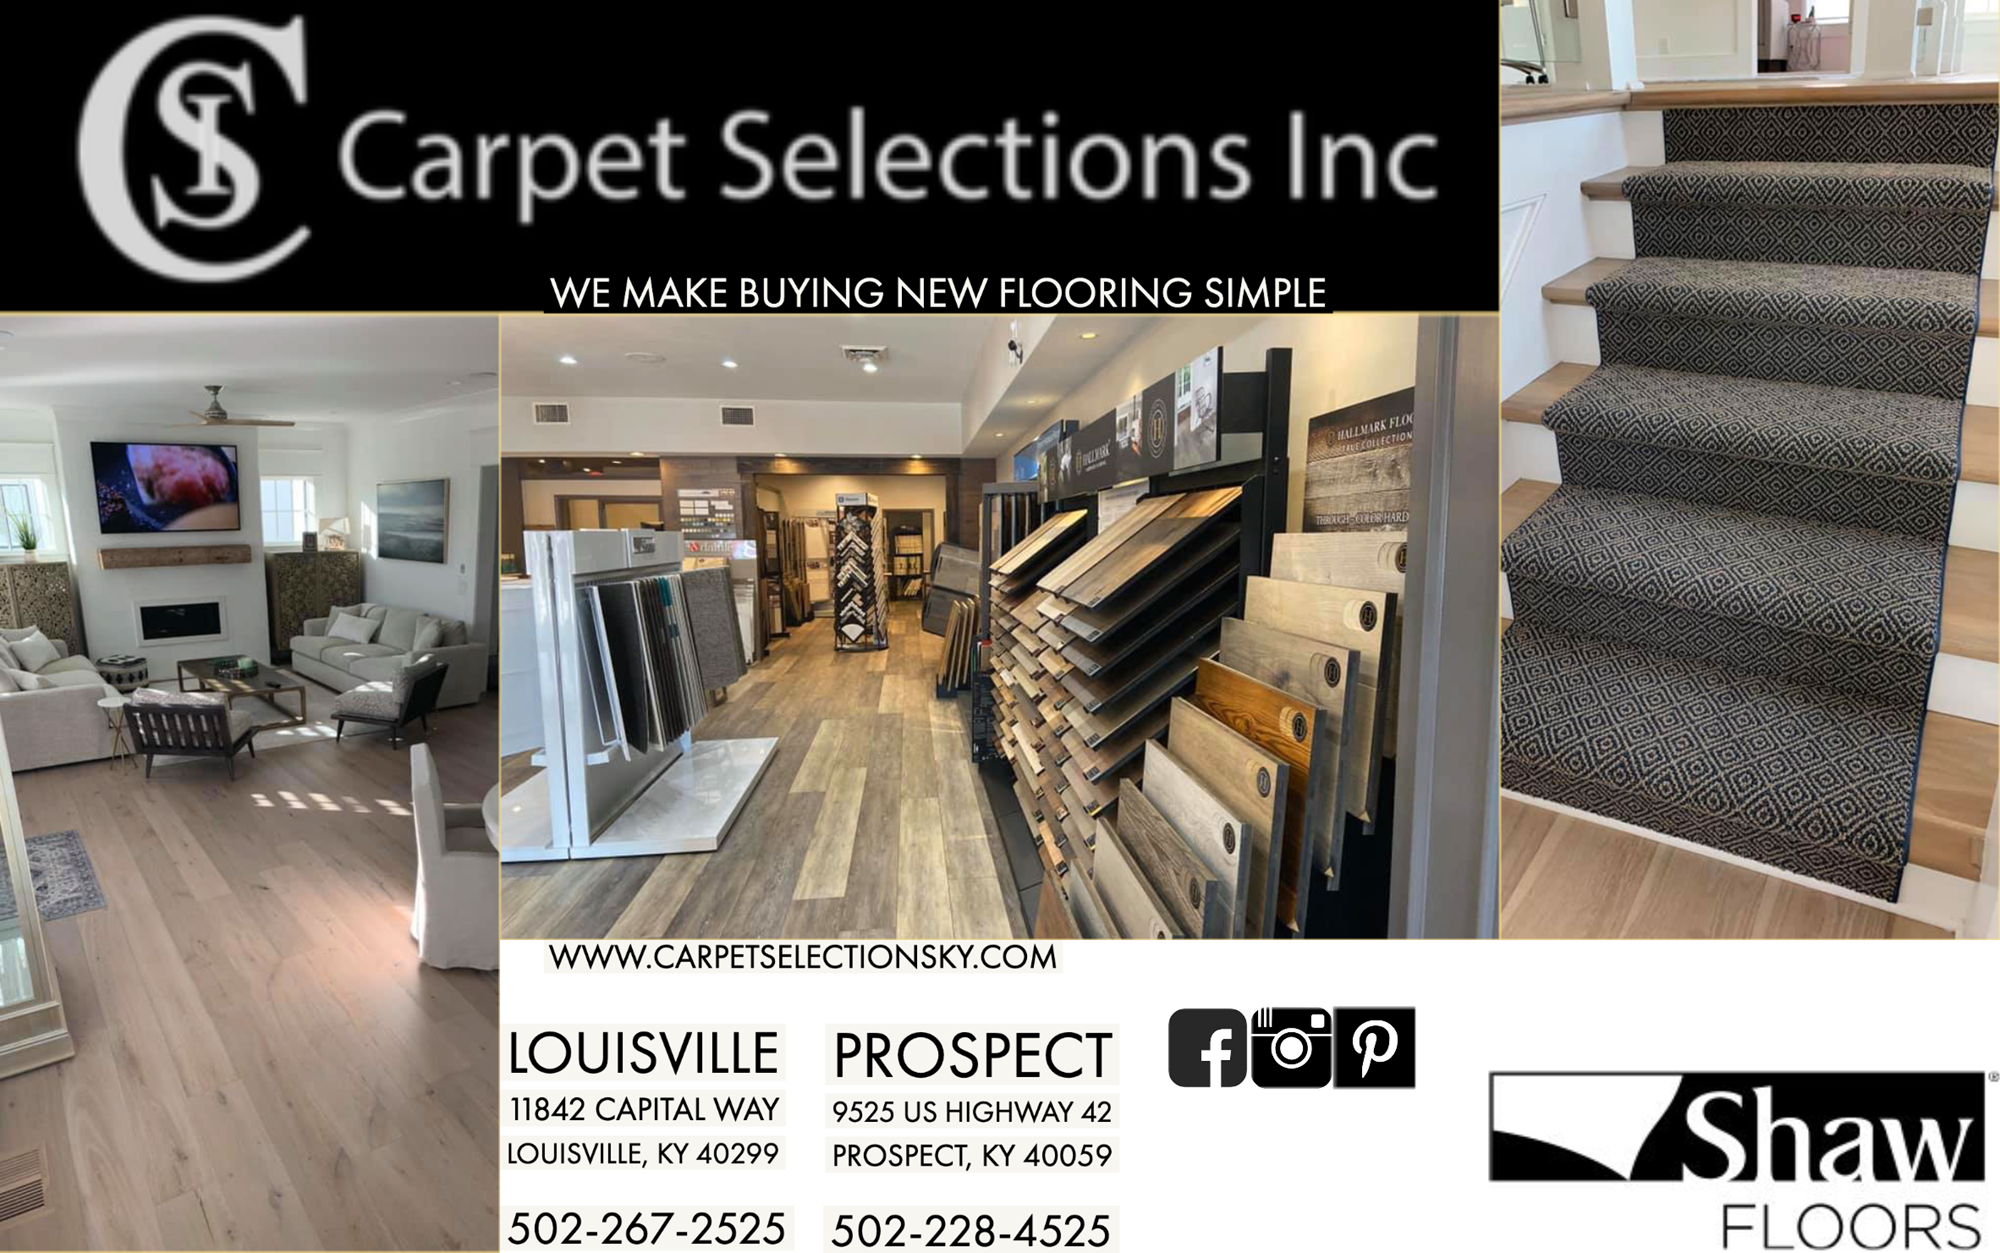 Welcome to Carpet Selections, Inc. in Prospect